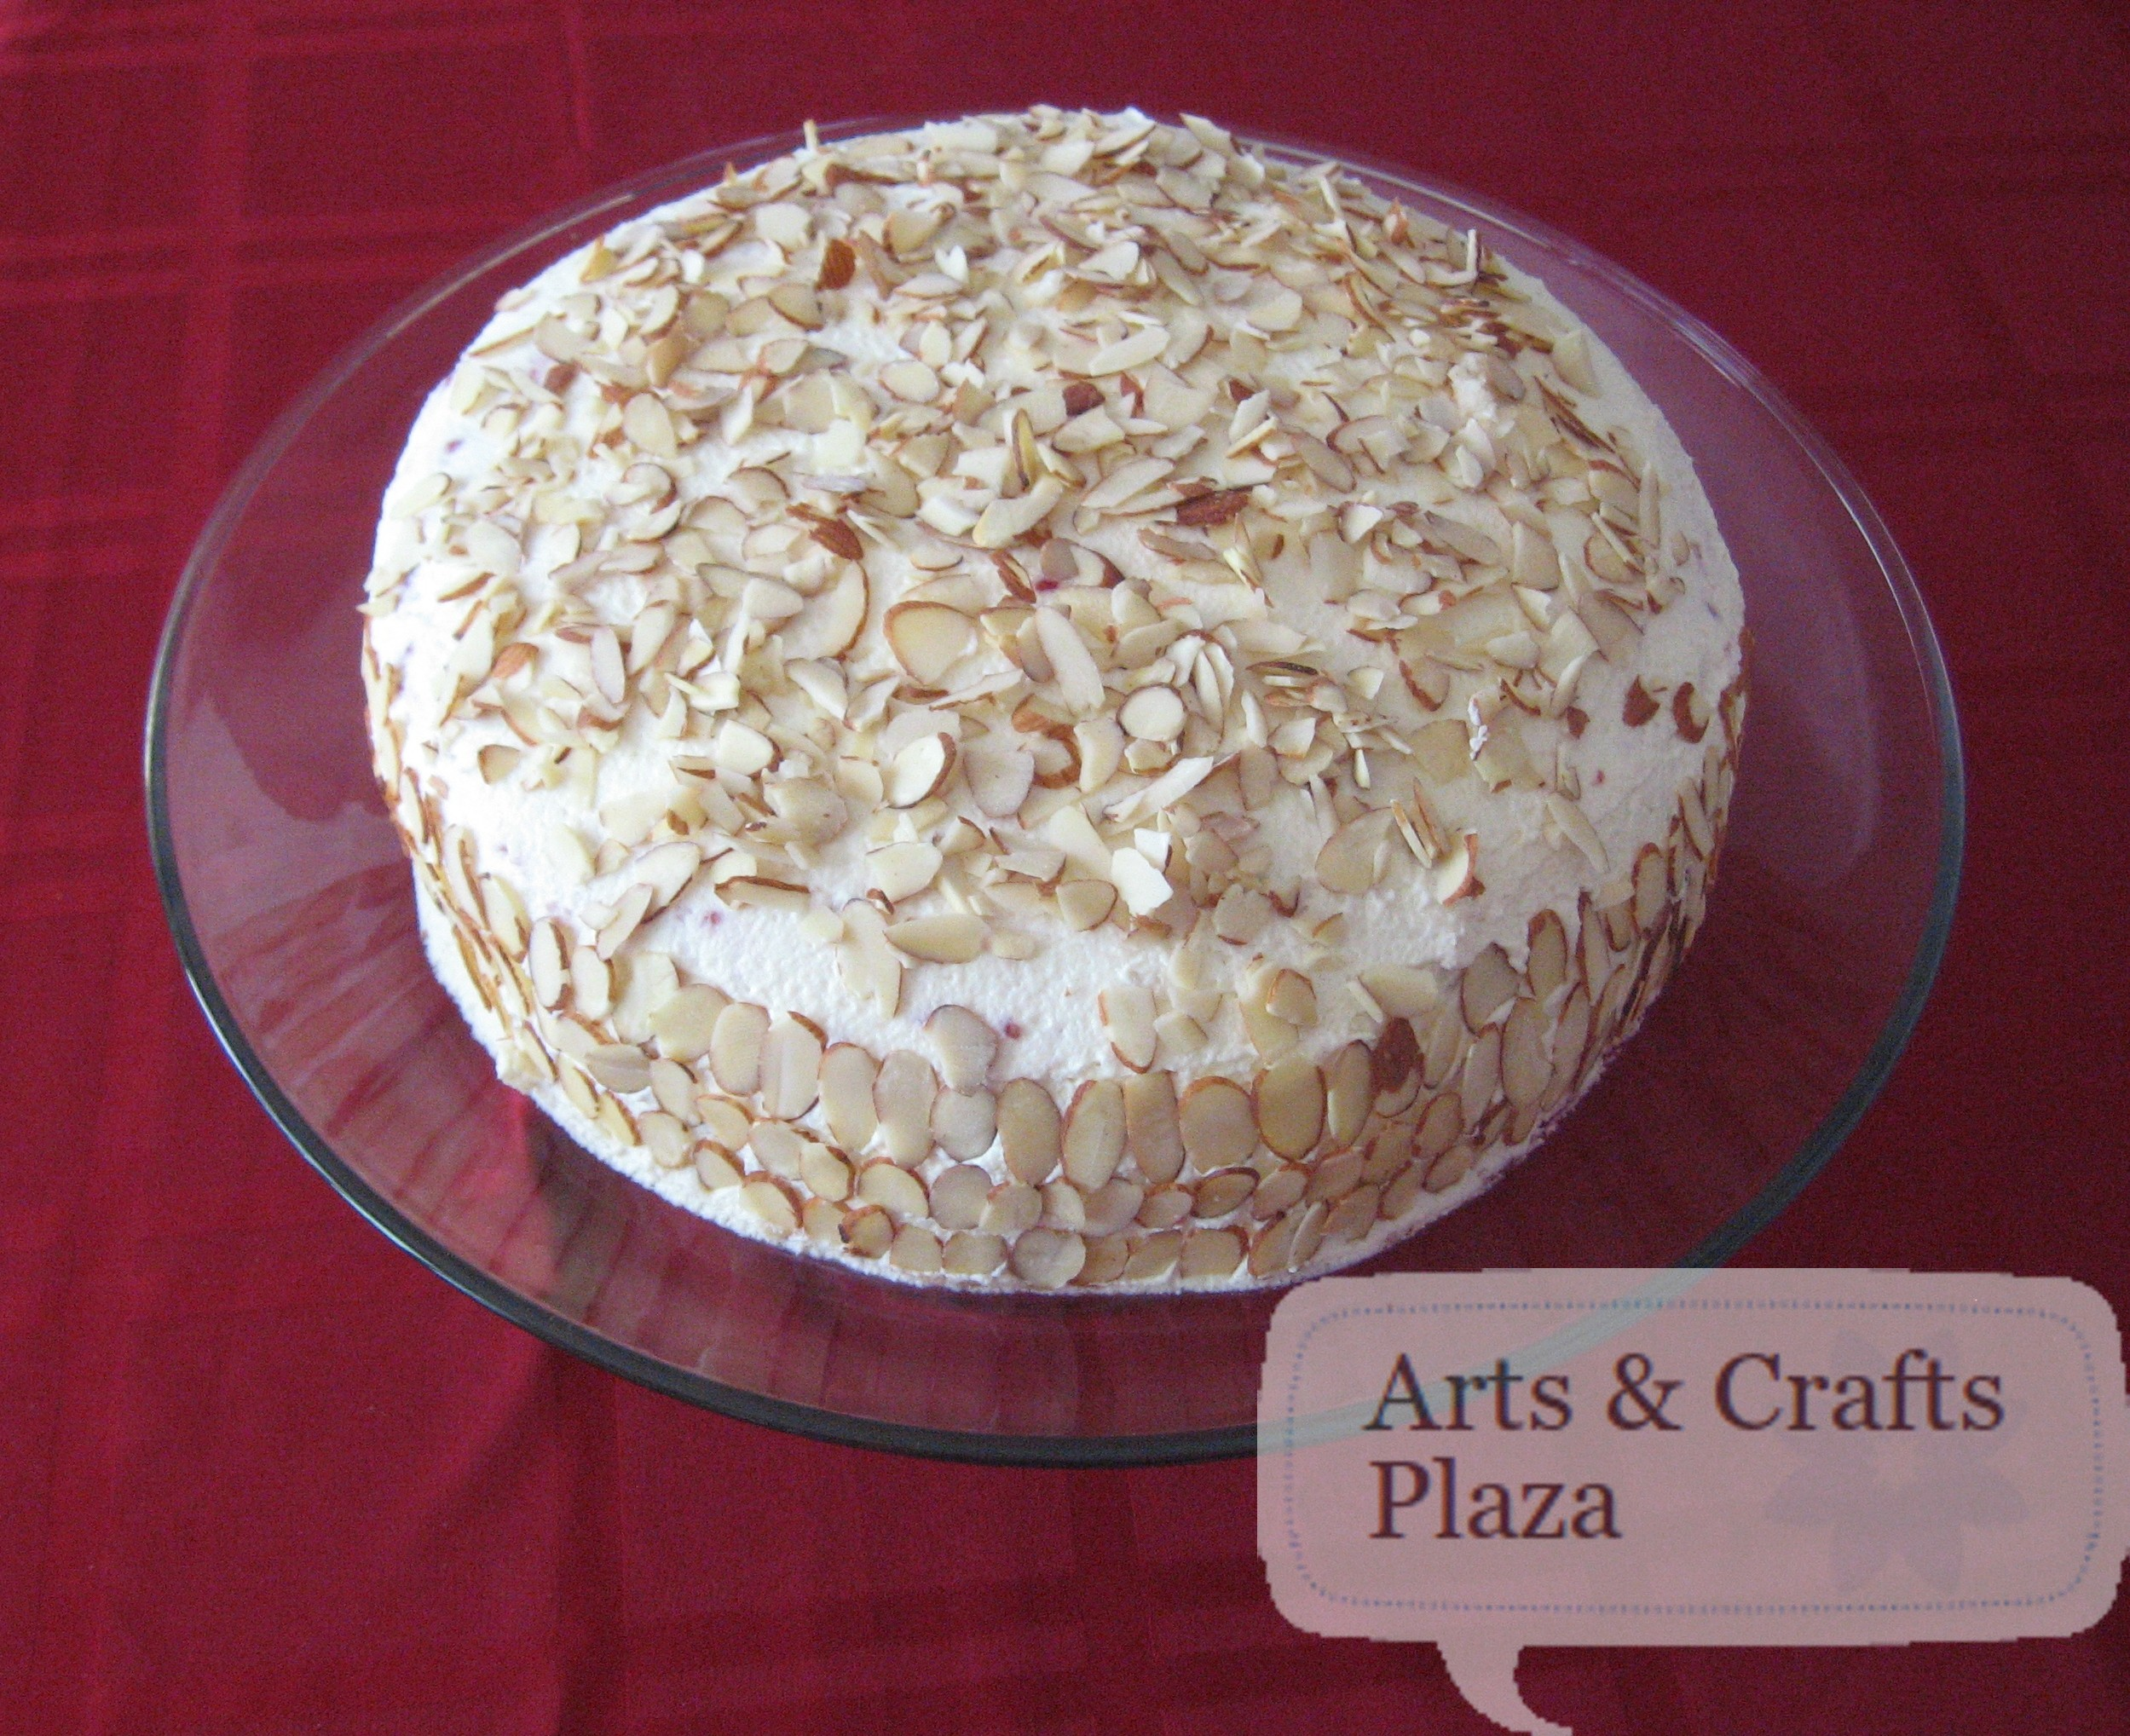 ... and white chocolate buttercream almond cake almond cake almond cake